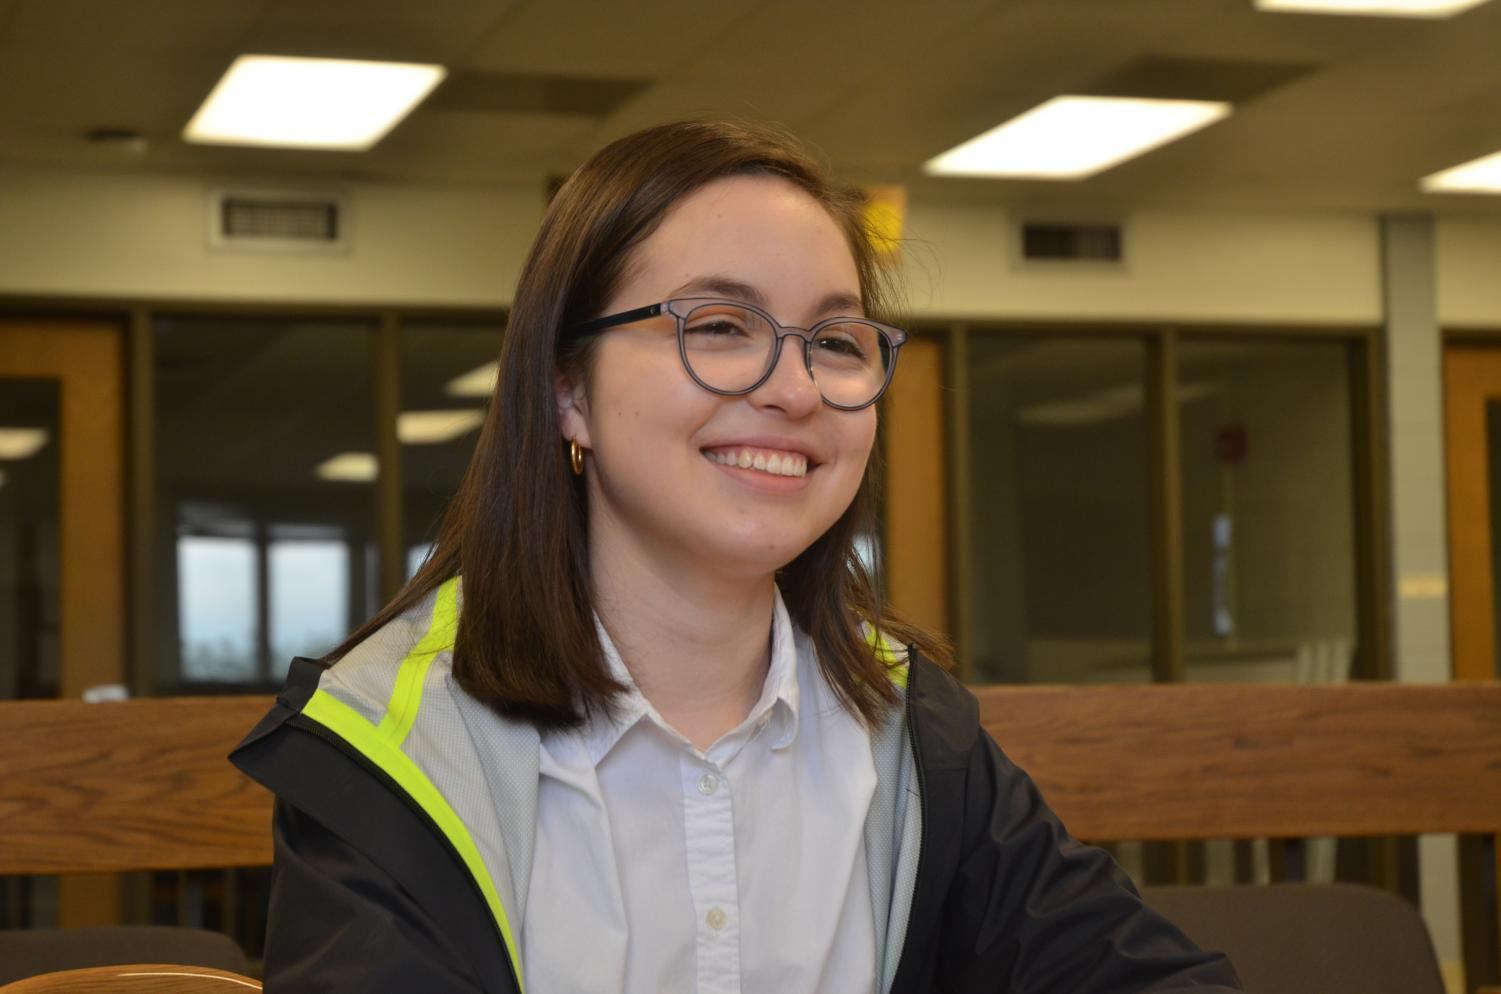 Perry Heredia '21 discusses her decision to attend the boarding school, Maston Academy in Boston, Massachusetts next year.